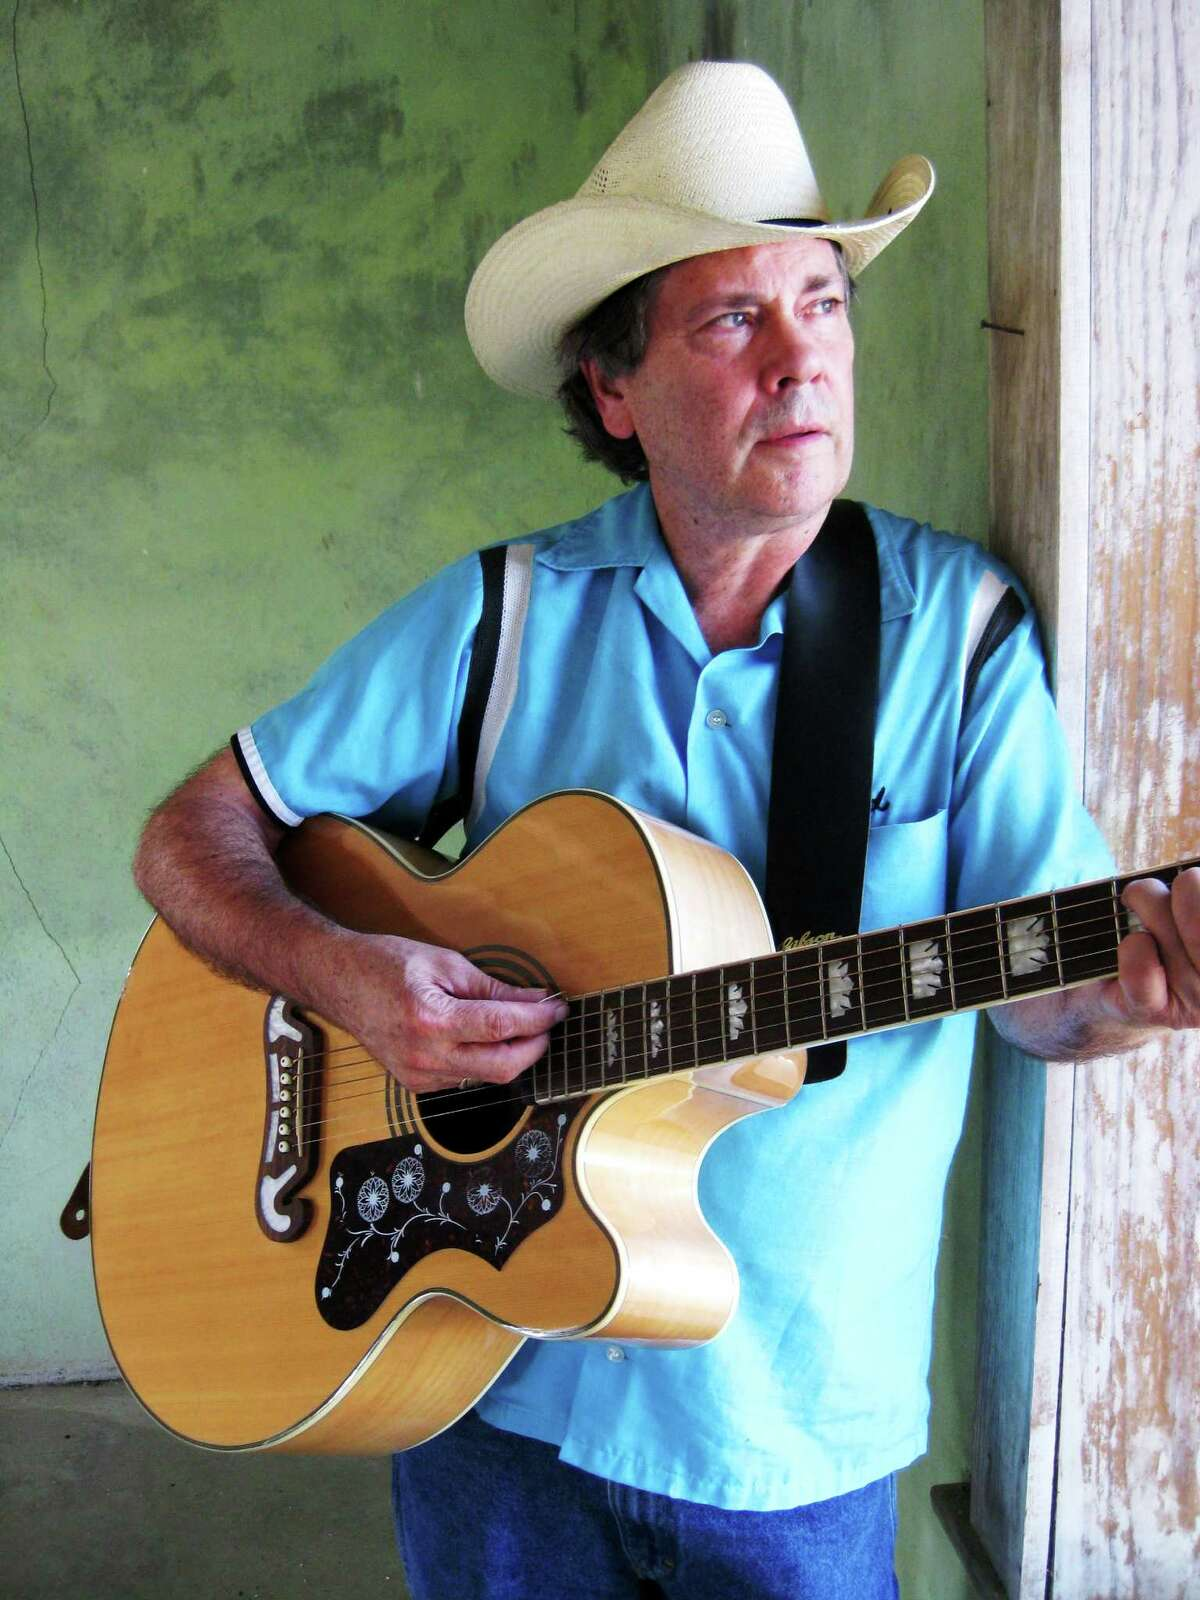 Singer/songwriter/music journalist Ron Young is cancer free but faces mounting medical bills.